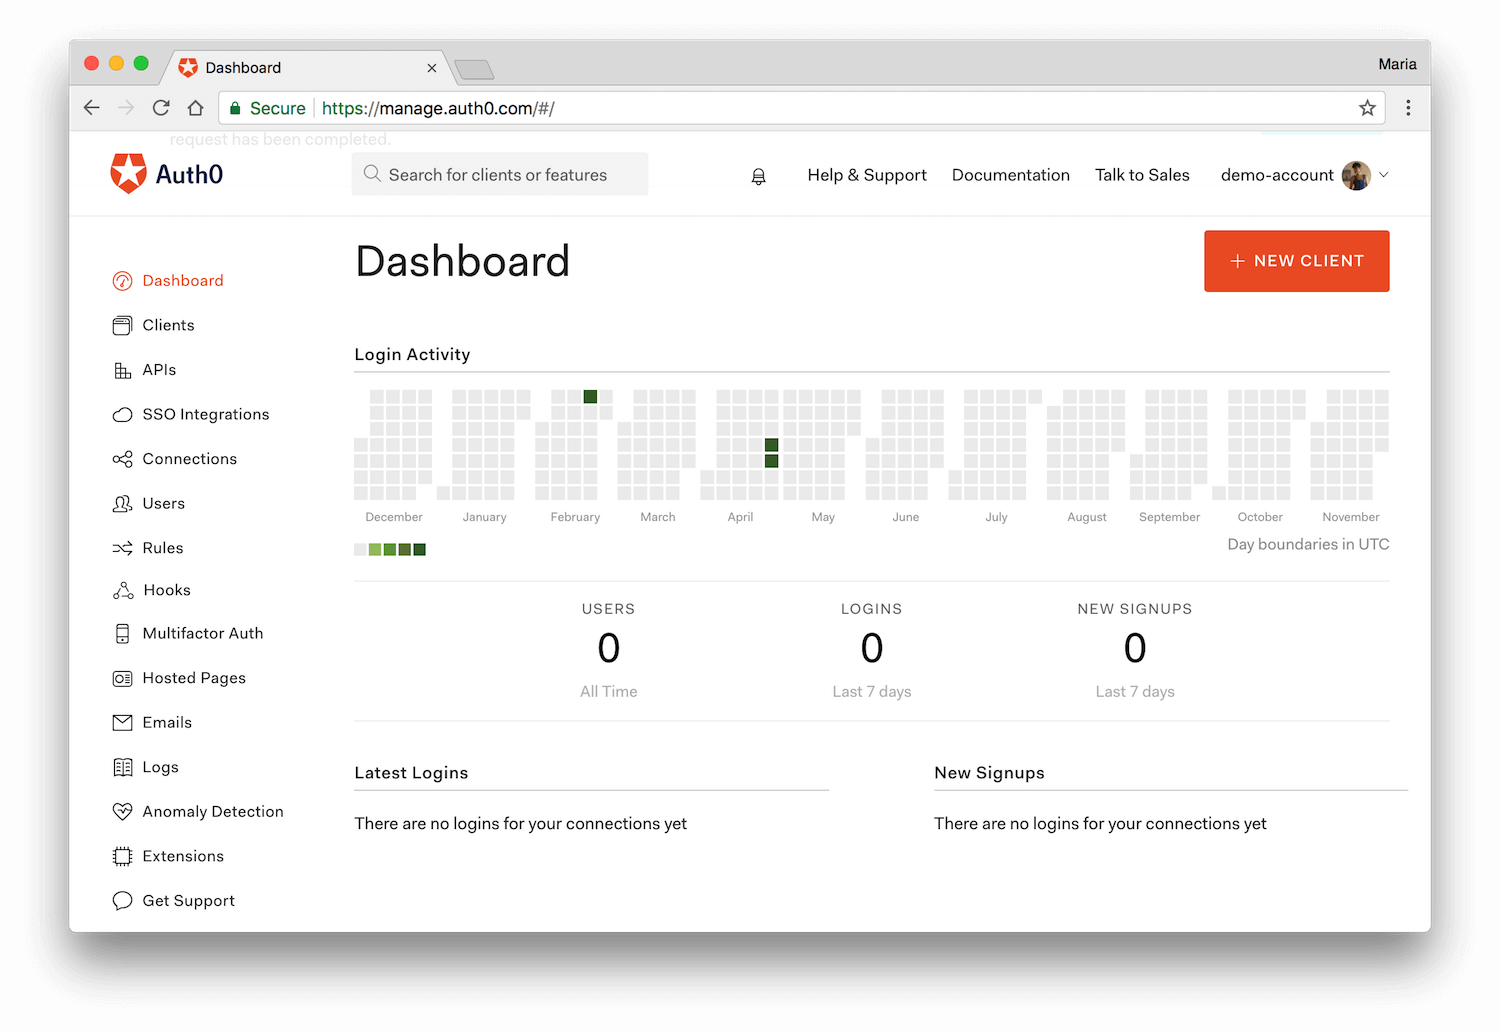 Auth0 Dashboard View